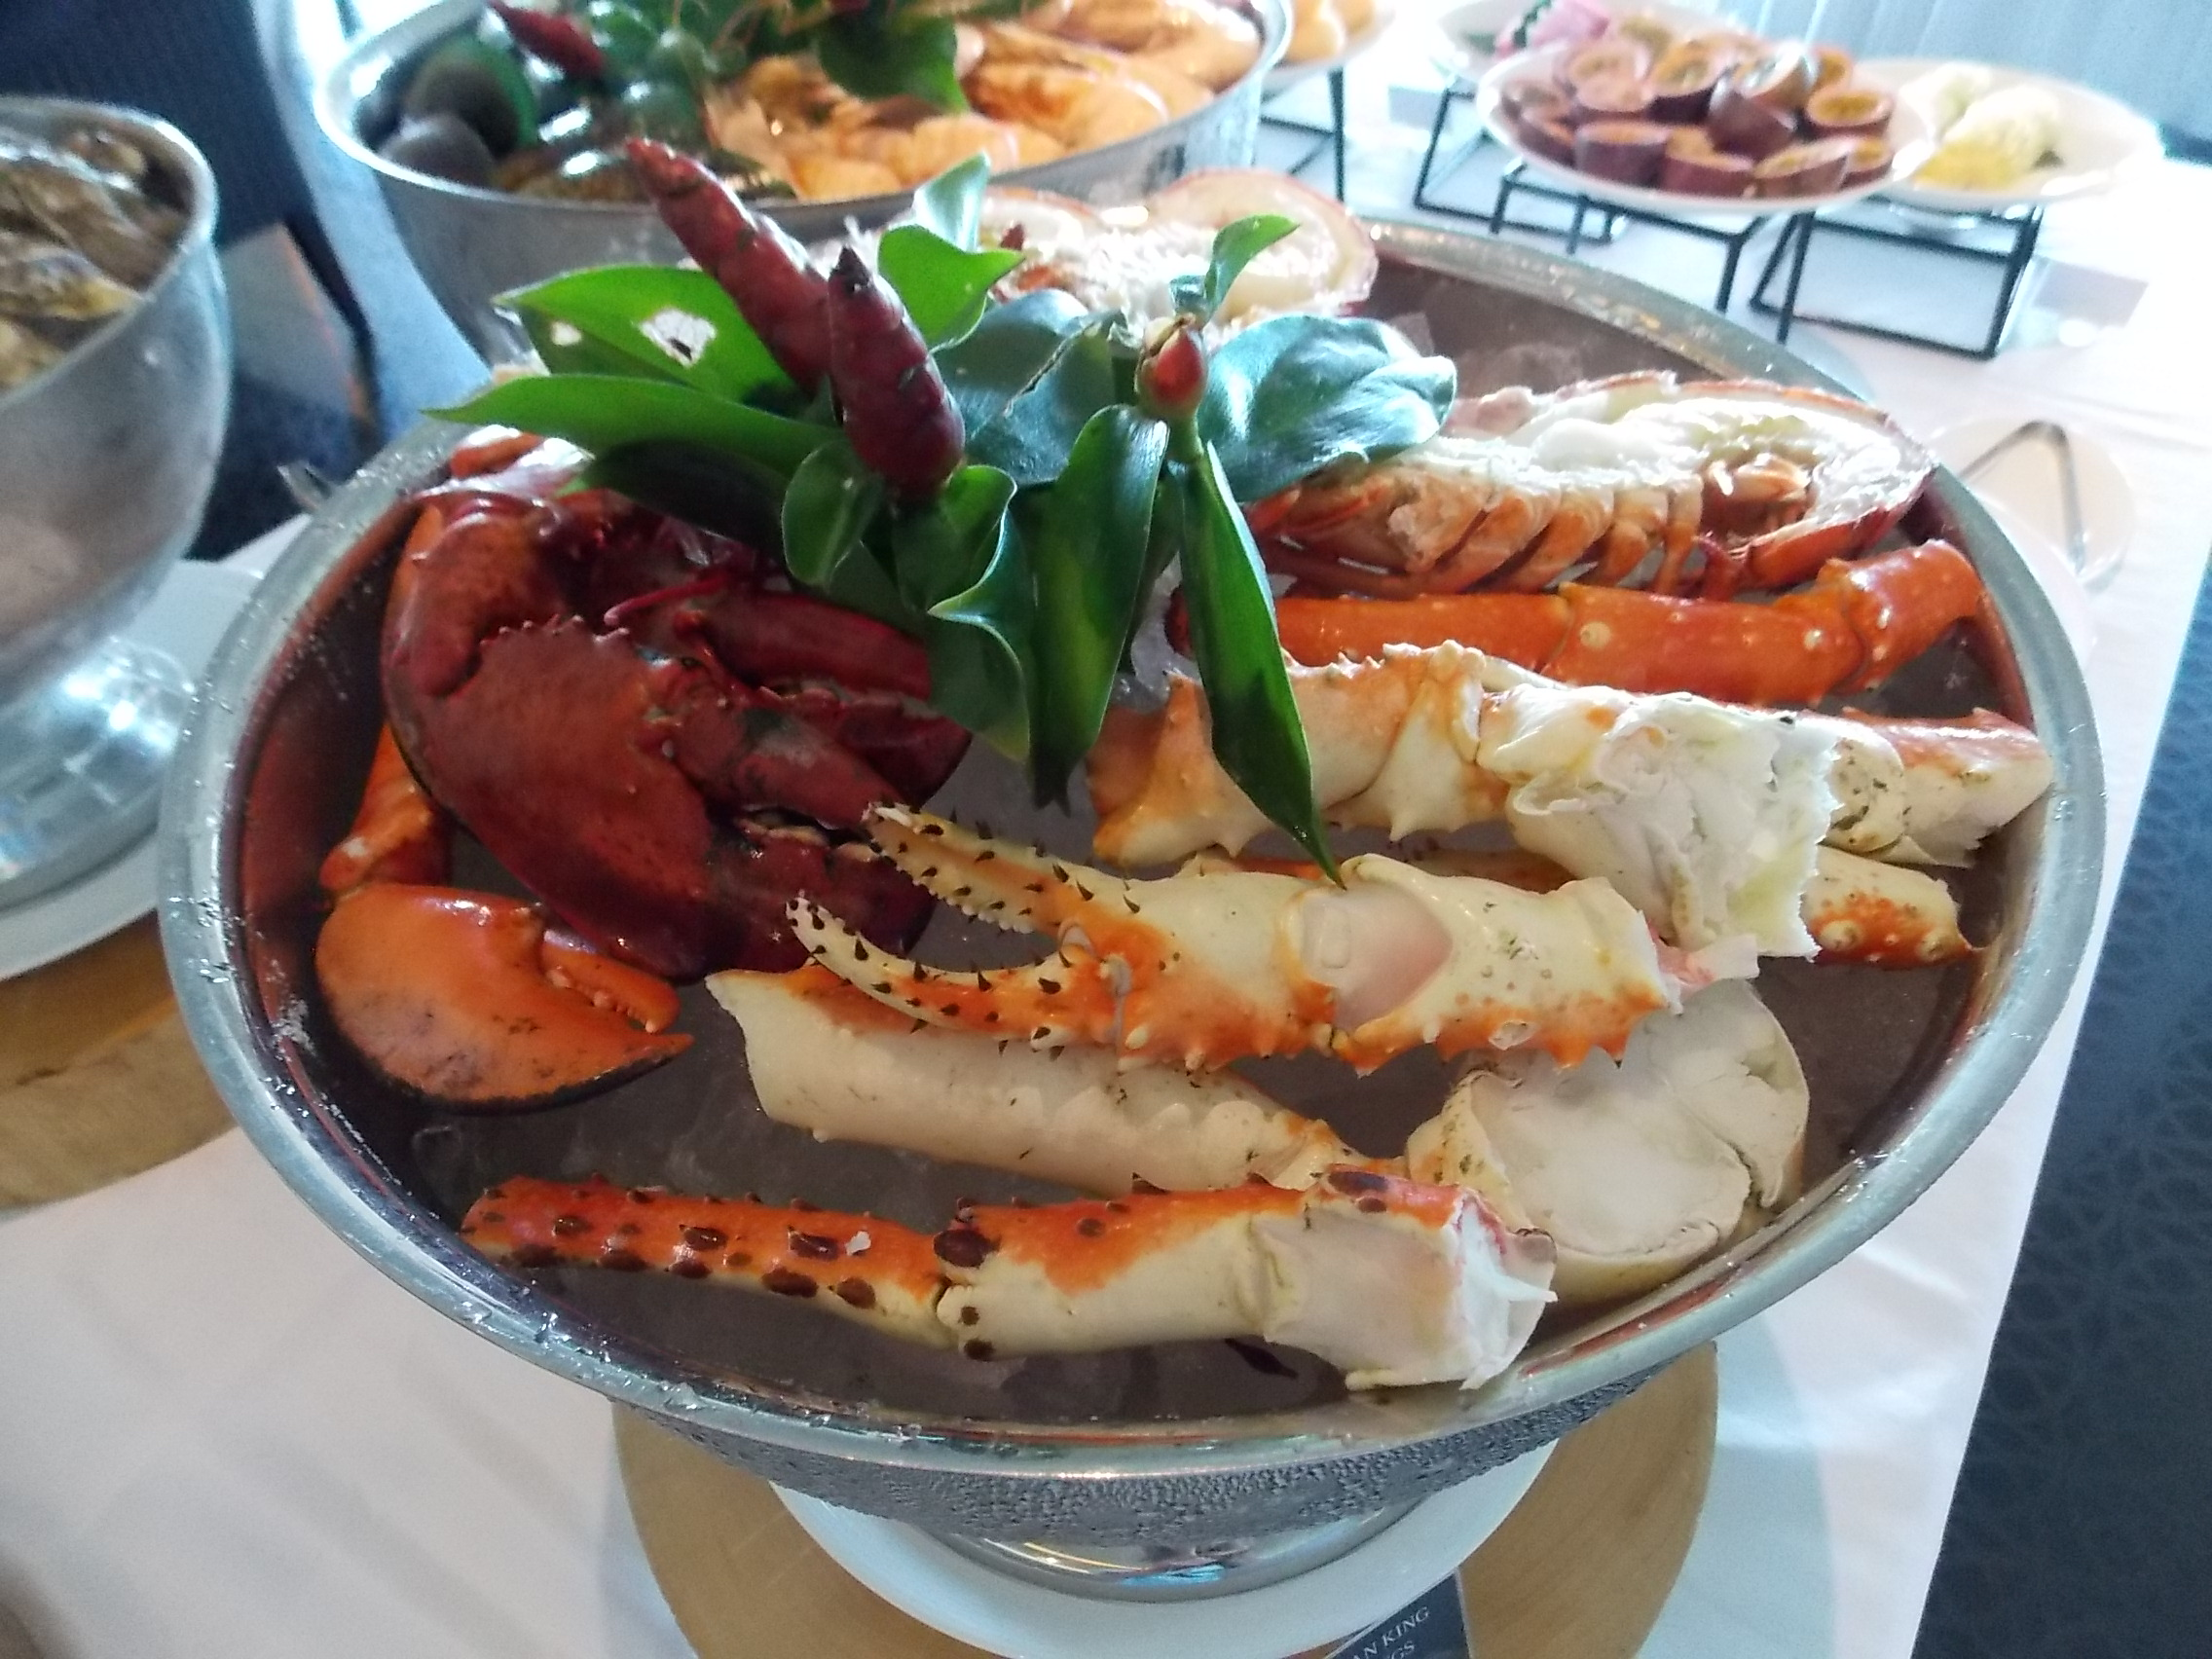 'Vana Belle' Chaweng Noi Saturday Brunch | Samui Times